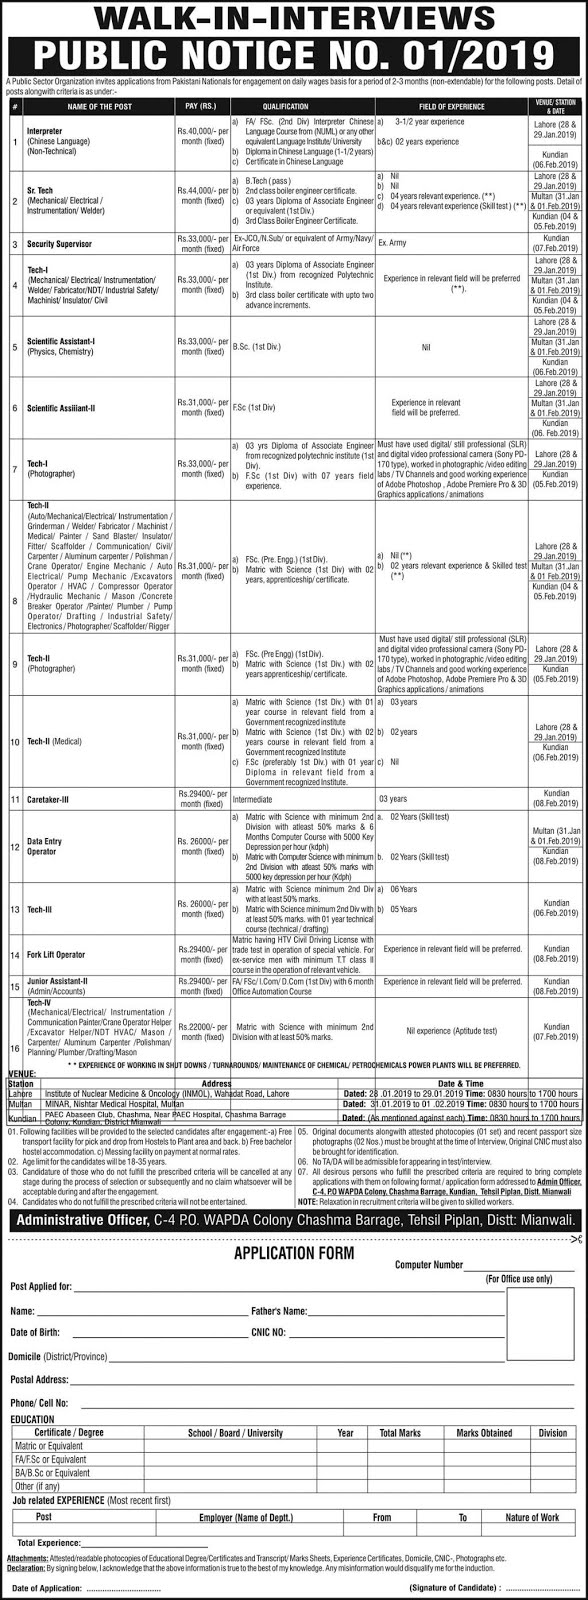 pakistan atomic energy jobs,jobs in pakistan,pakistan atomic energy commission jobs,pakistan atomic energy commission jobs test papers,pakistan atomic energy commission,atomic energy commission jobs 2018,pakistan atomic energy jobs 2018,atomic energy jobs,pakistan atomic energy commission jobs 2018,pakistan atomic energy jobs in mianwali,pakistan atomic energy jobs 2019,latest jobs in pakistan